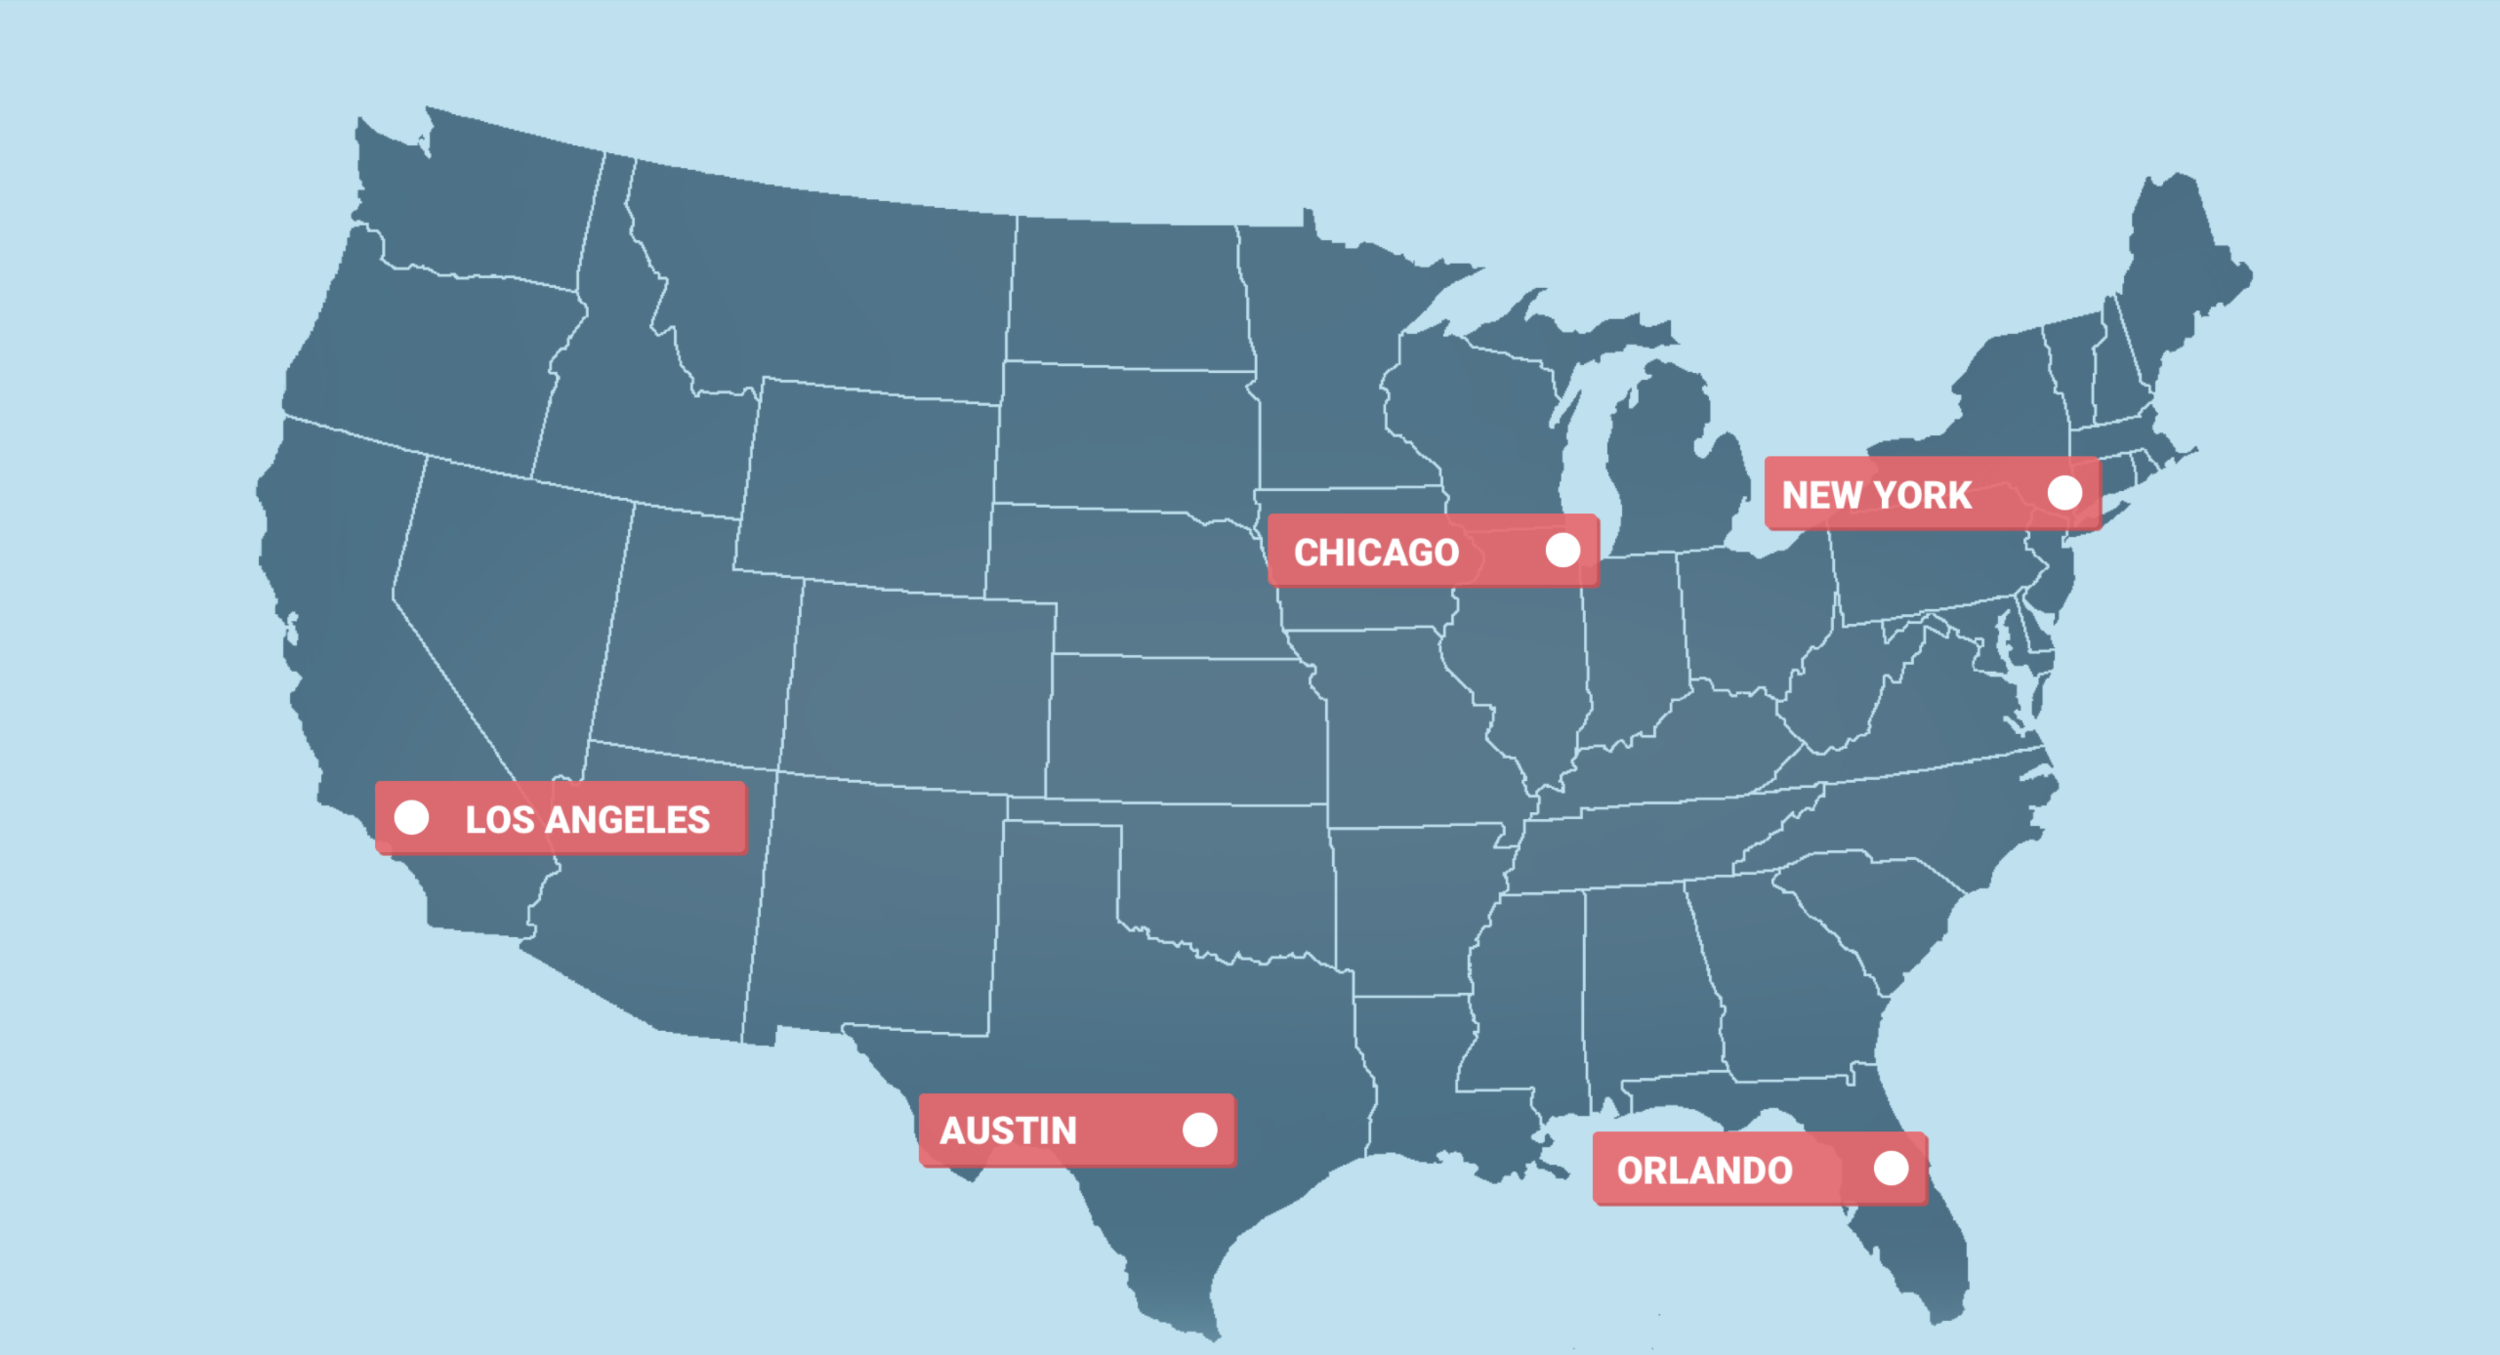 Locations - We will launch in New York, Chicago, Orlando, Austin, and LA.These five cities have a strong interest in professional wrestling, but more importantly they have a need for youth activities.